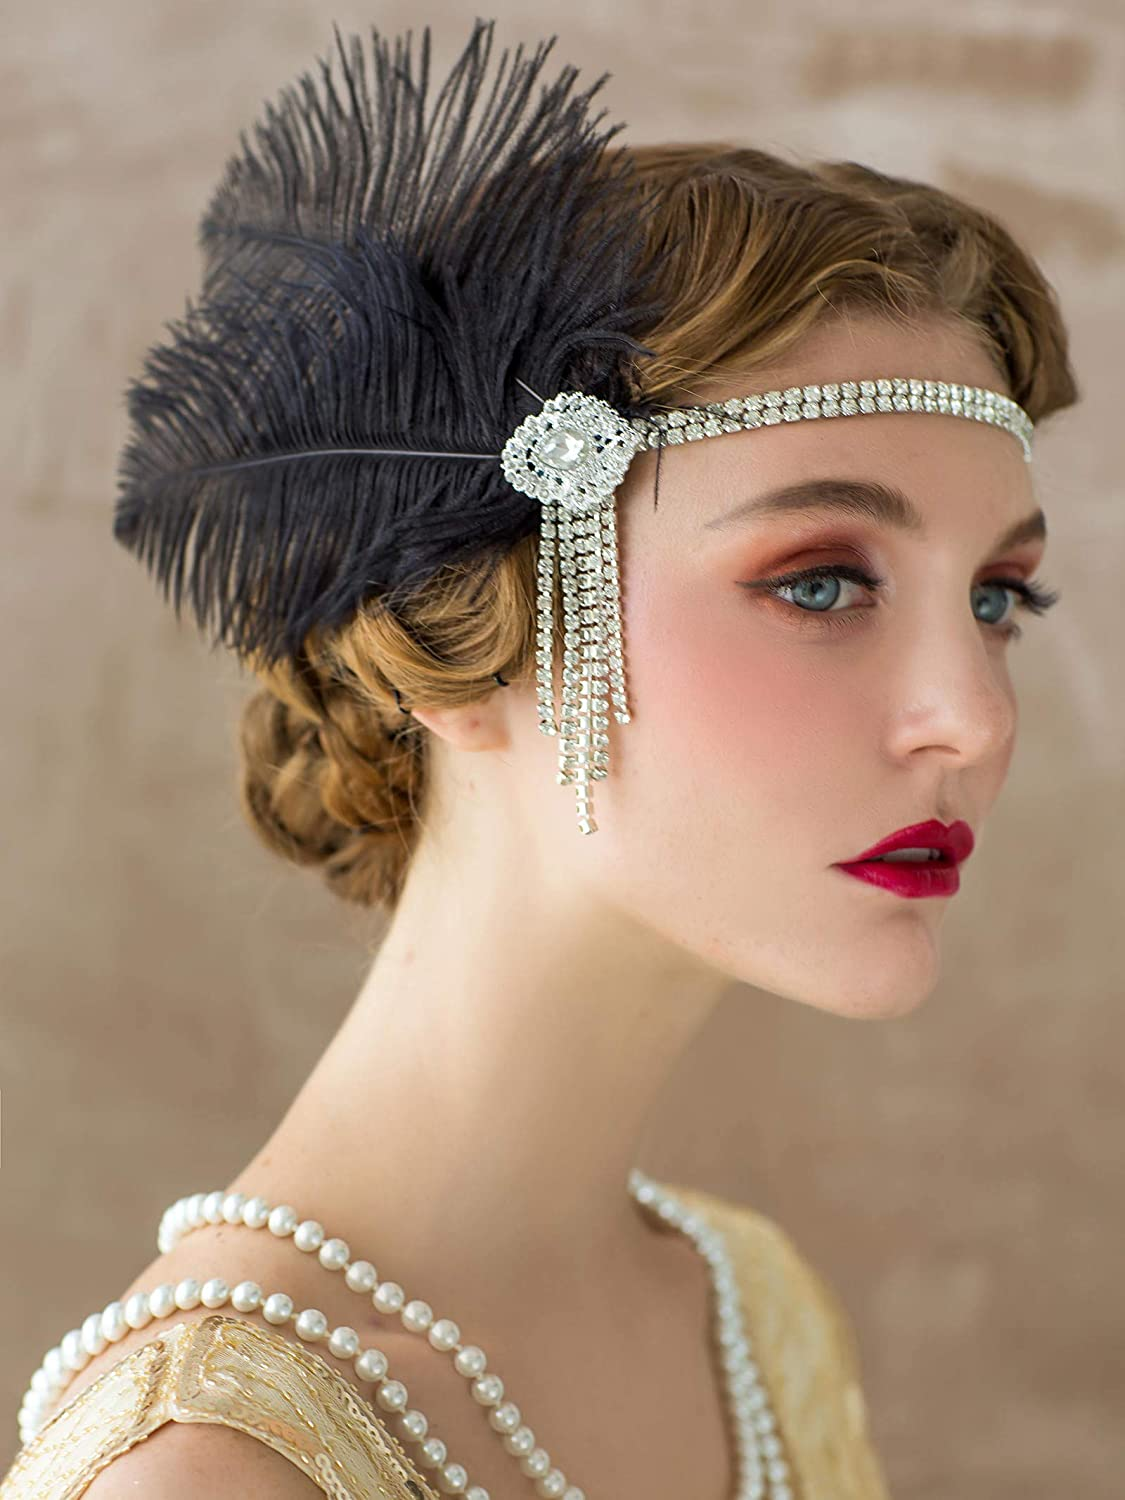 1920s Fashion & Clothing | Roaring 20s Attire SWEETV Flapper Headbands Womens 1920s Headpiece Great Gatsby Inspired Feather Headband Cocktail Party Rhinestone Hair Accessories for Women Black $13.99 AT vintagedancer.com